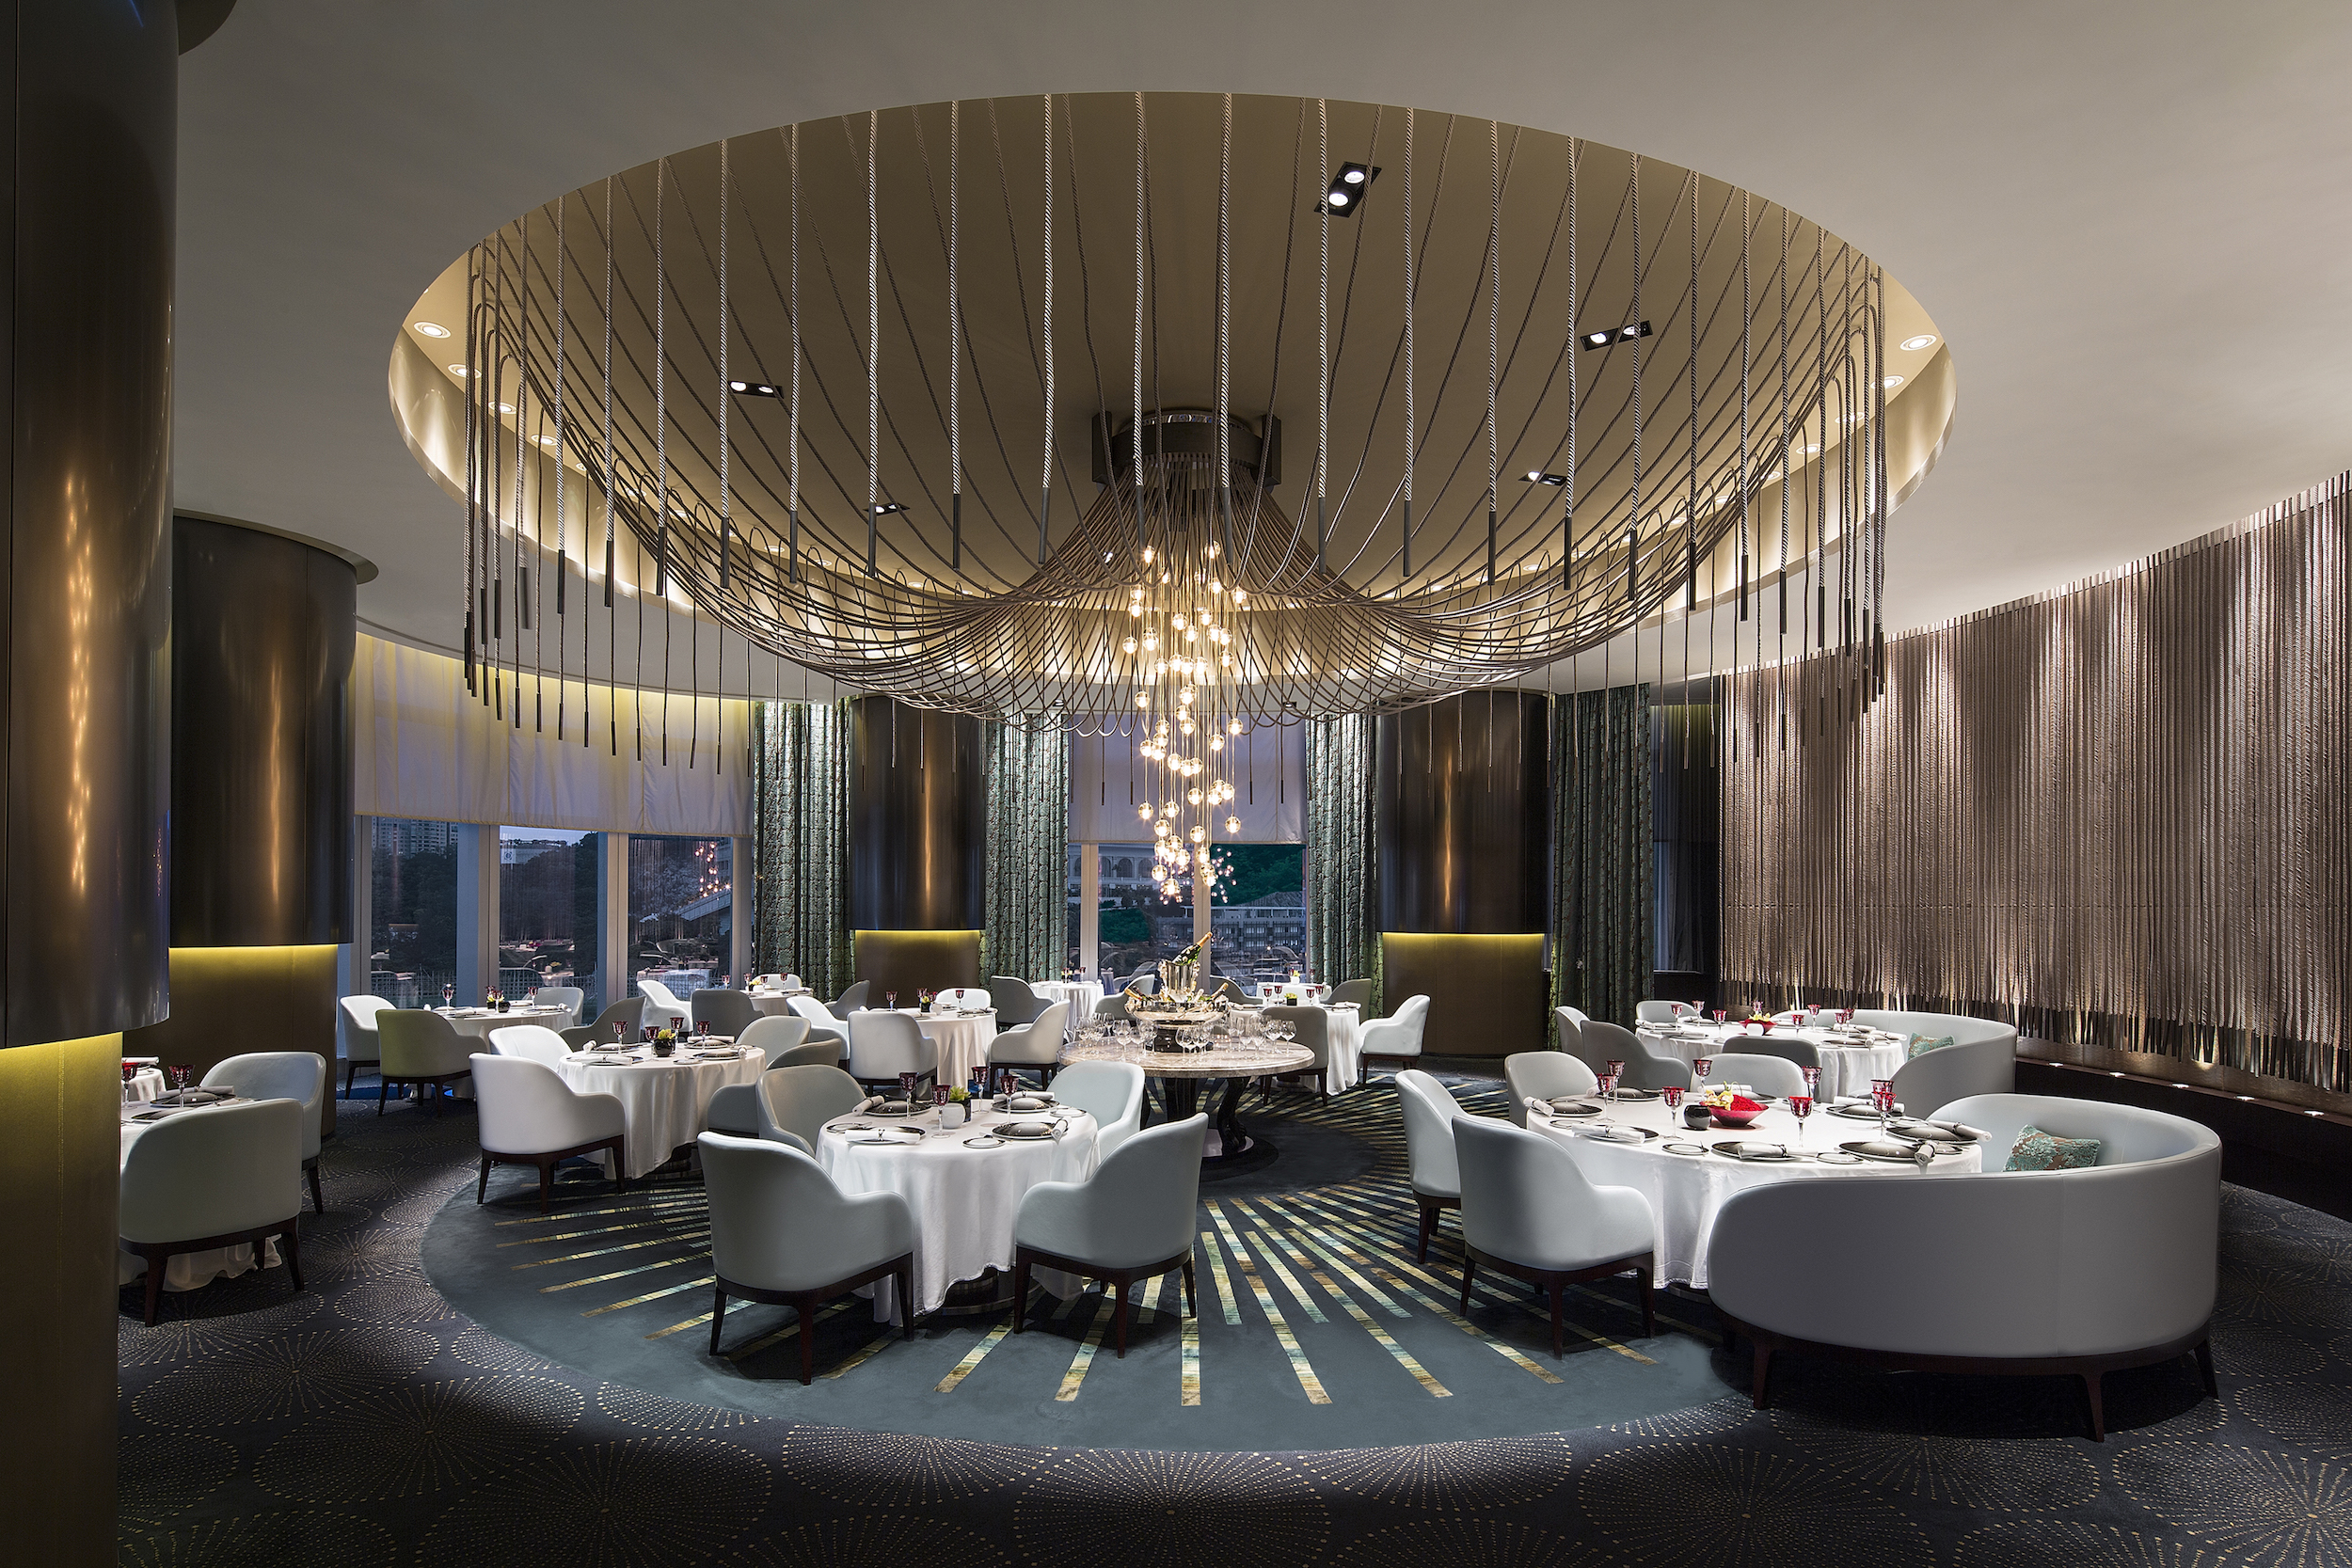 A Michelin-starred experience awaits at City of Dreams in Macau